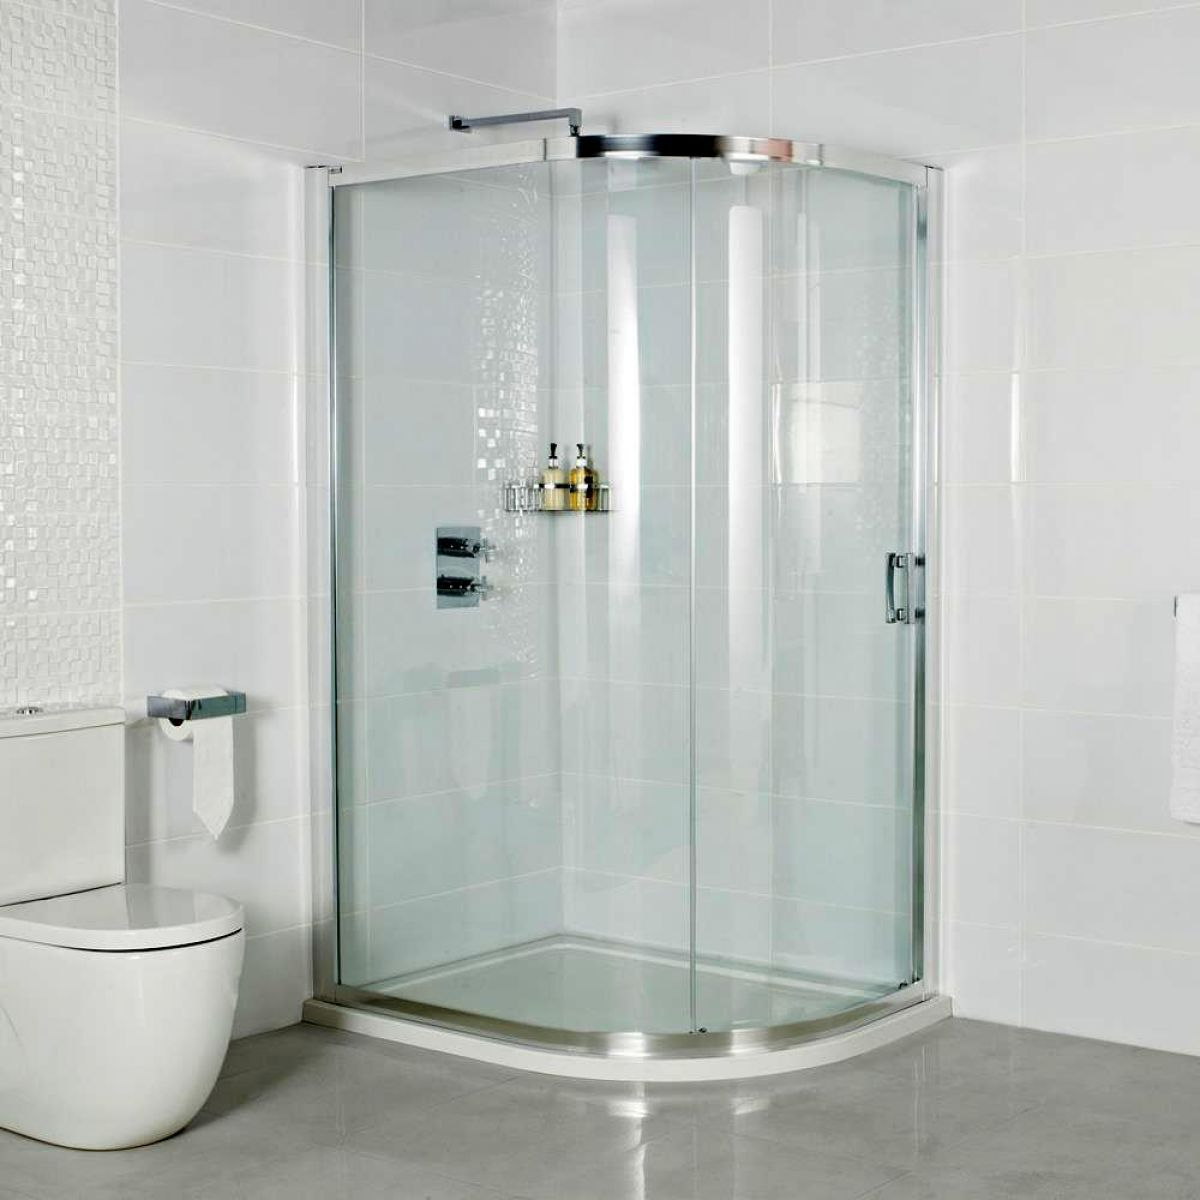 Roman embrace single door offset quadrant shower enclosure for Door quadrant